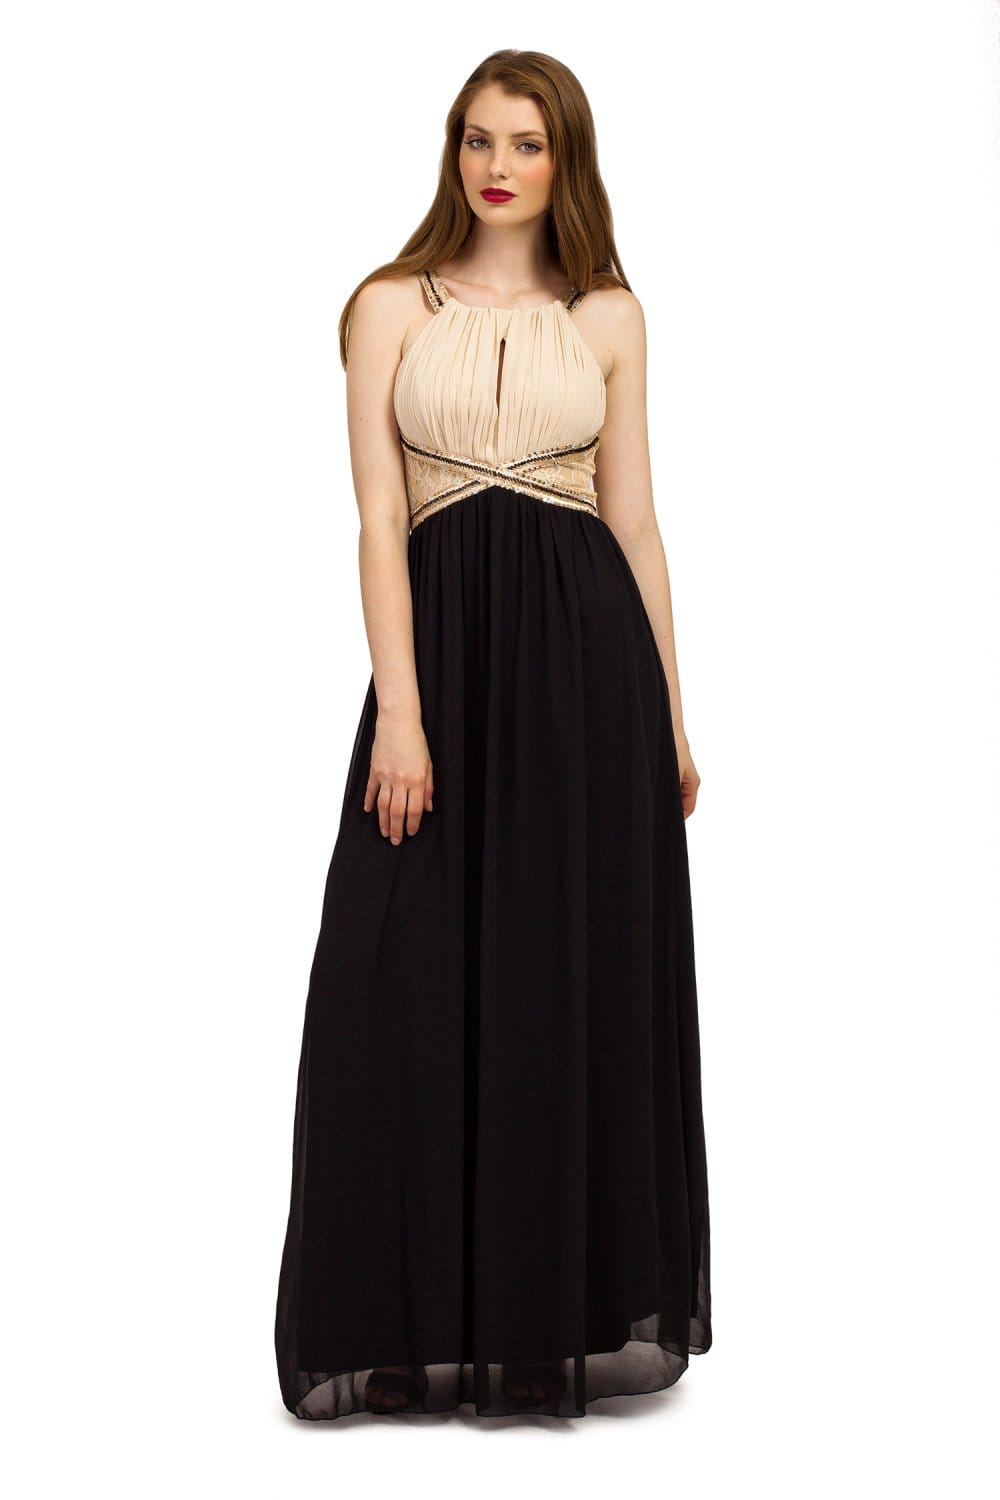 This classic black chiffon dress features a classic neckline and a beautiful flowy skirt. Pair with our skinny gold metal belt to complete the look.